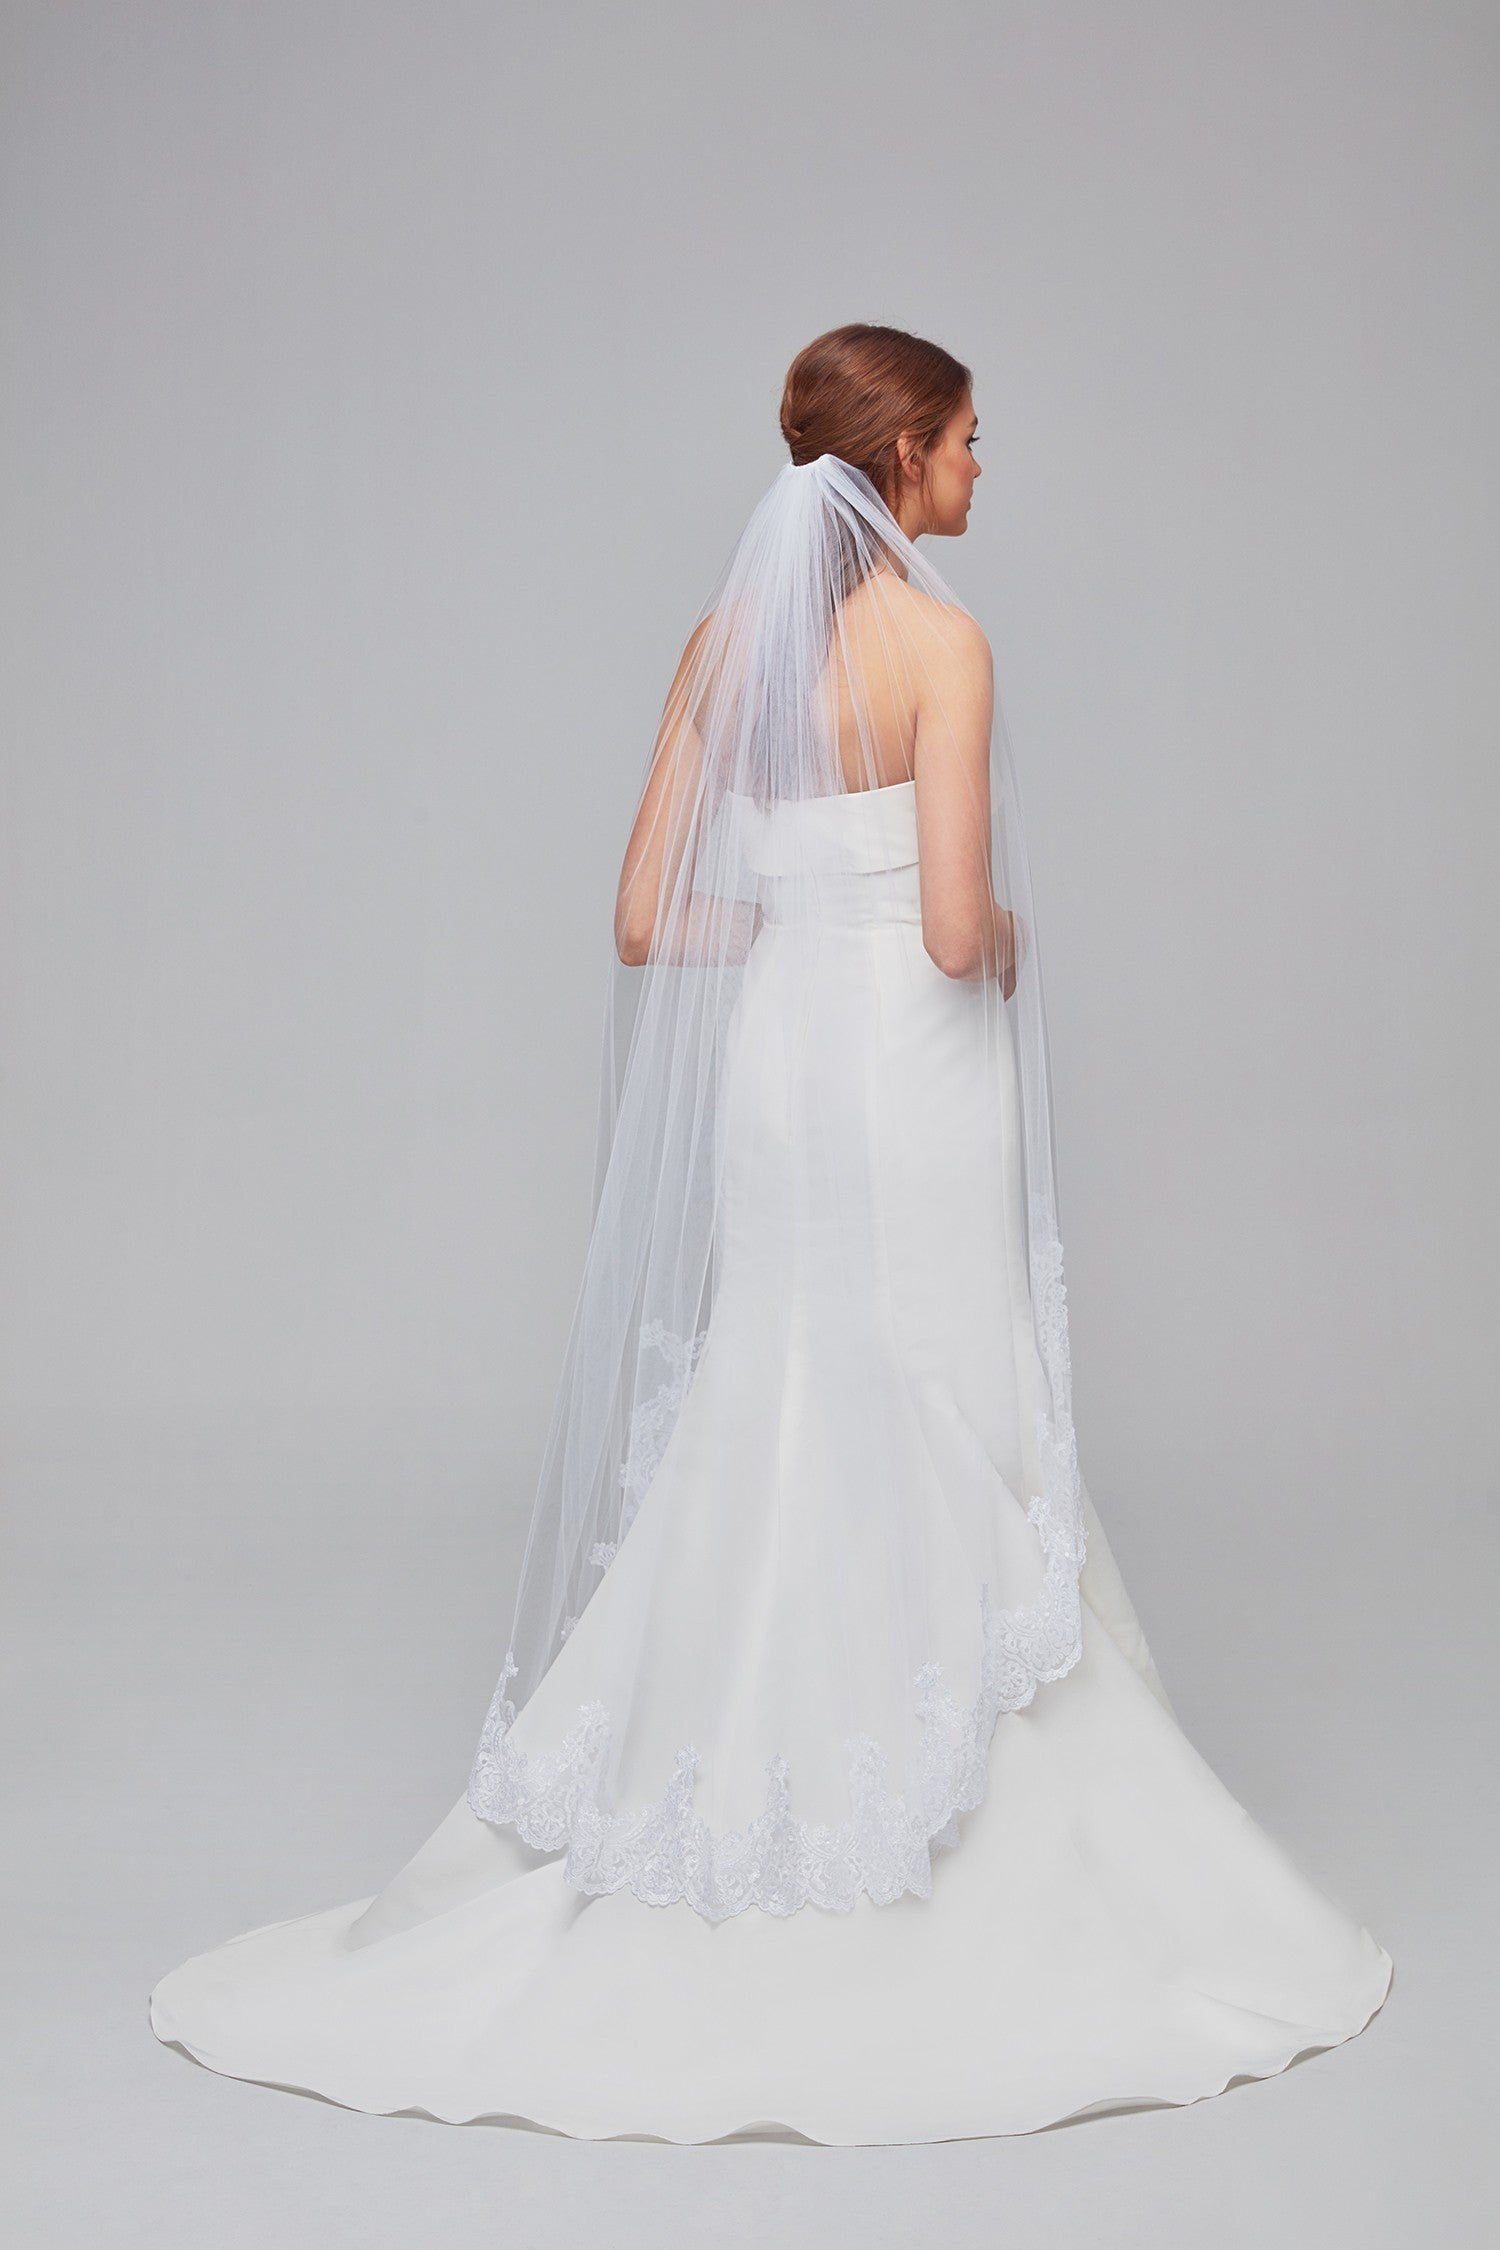 Embellished Lace Walking Veil-OCV780